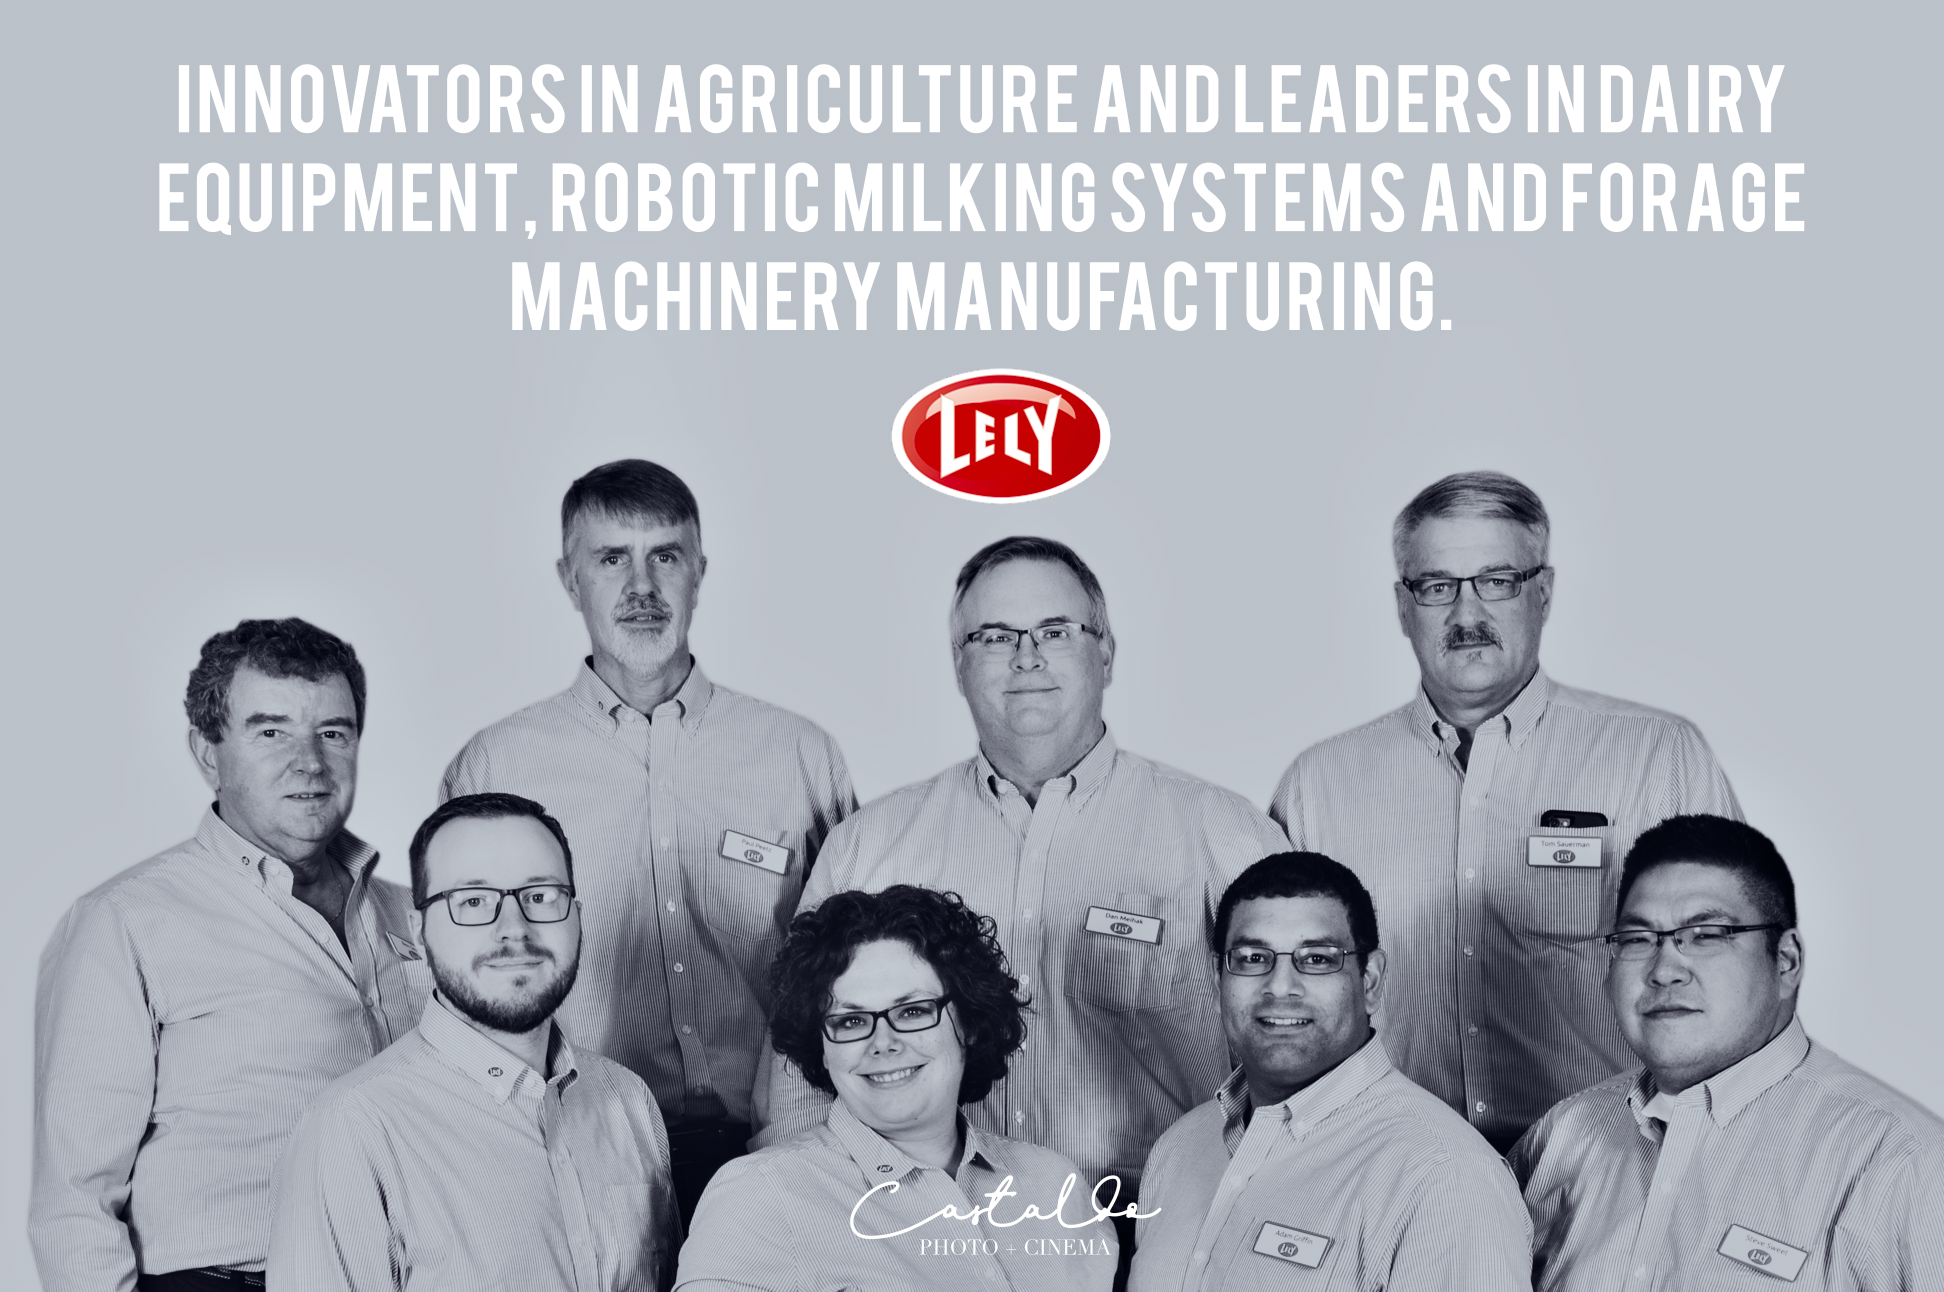 Innovators in agriculture and leaders in dairy equipment, robotic milking systems and forage machinery manufacturing. Import - Wholesale - Distribution - Service - Customer Support - Spare Parts supply - www.CASTALDOmedia.com - Photo + Cinema - Commercial Division (Orlando headshot and entertainment photographer) :: We had an amazing time doing Lely team headshots, during the Lely Convention at the Westgate Lakes Resort & Spa | LYLA is Innovators in agriculture and leaders in dairy equipment, robotic milking systems, and forage machinery manufacturing. Import - Wholesale - Distribution - Service - Customer Support - Spare Parts supply ( https://www.lely.com/us/ )